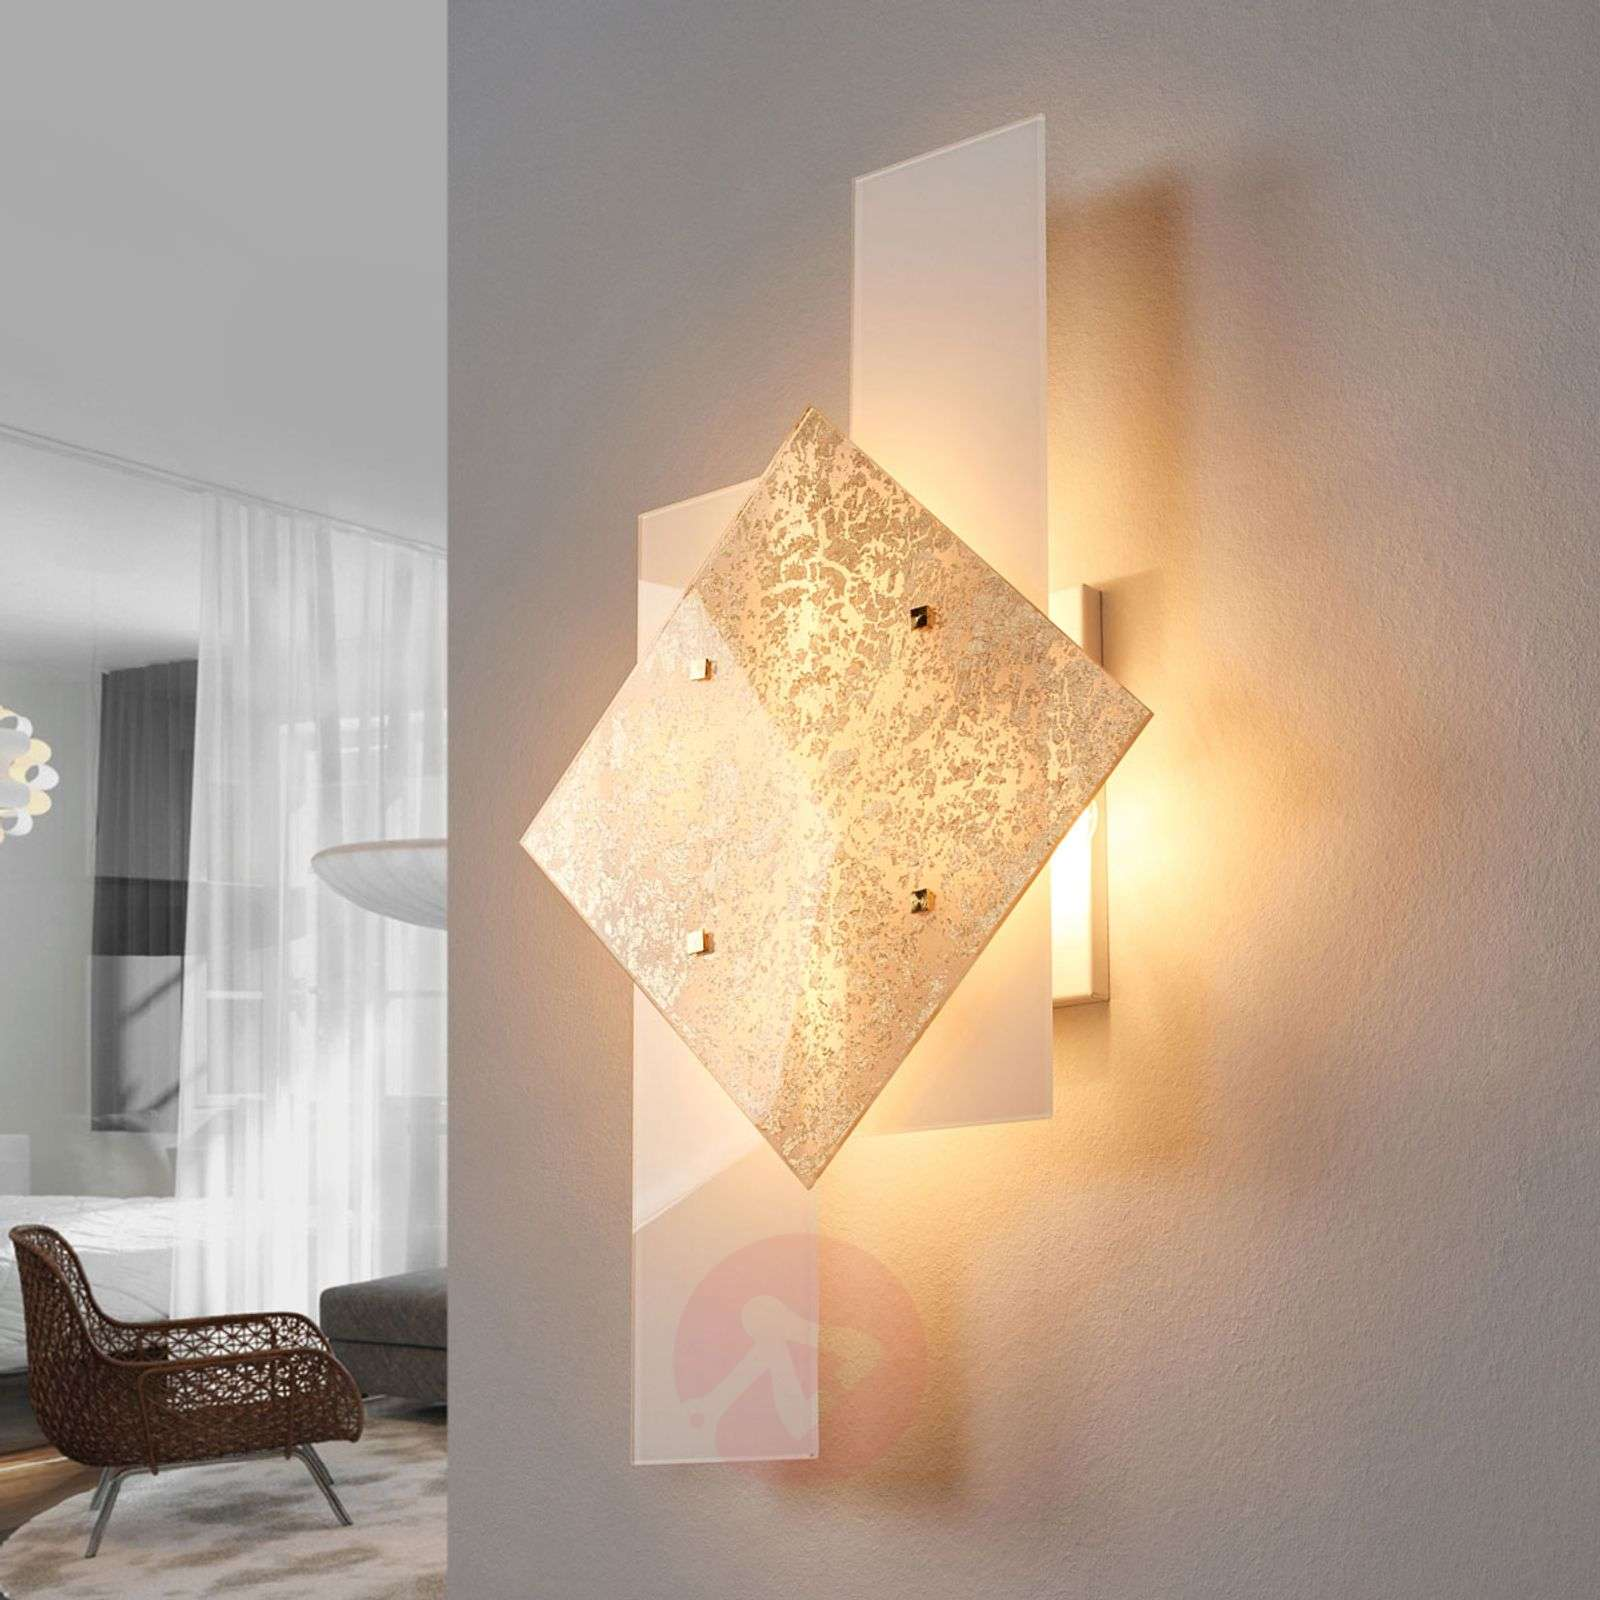 Exelent Wall Decor With Lights Collection - All About Wallart ...